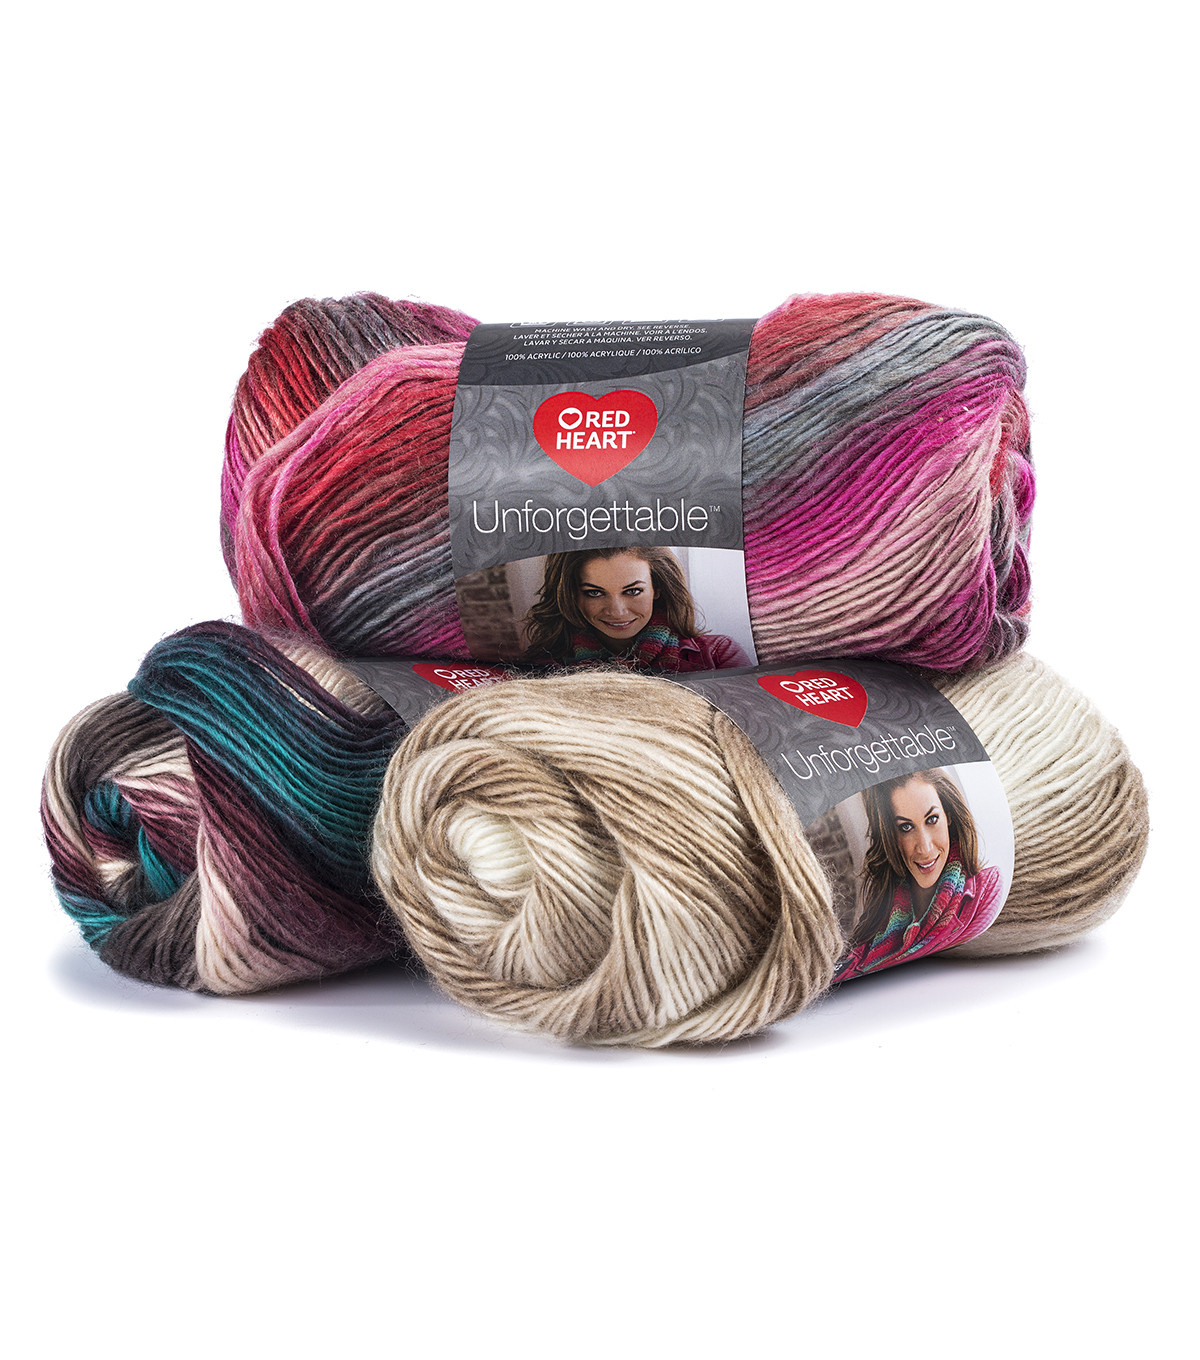 Best Of Red Heart Boutique Unfor Table Yarn Heart Yarn Of Brilliant 50 Images Heart Yarn